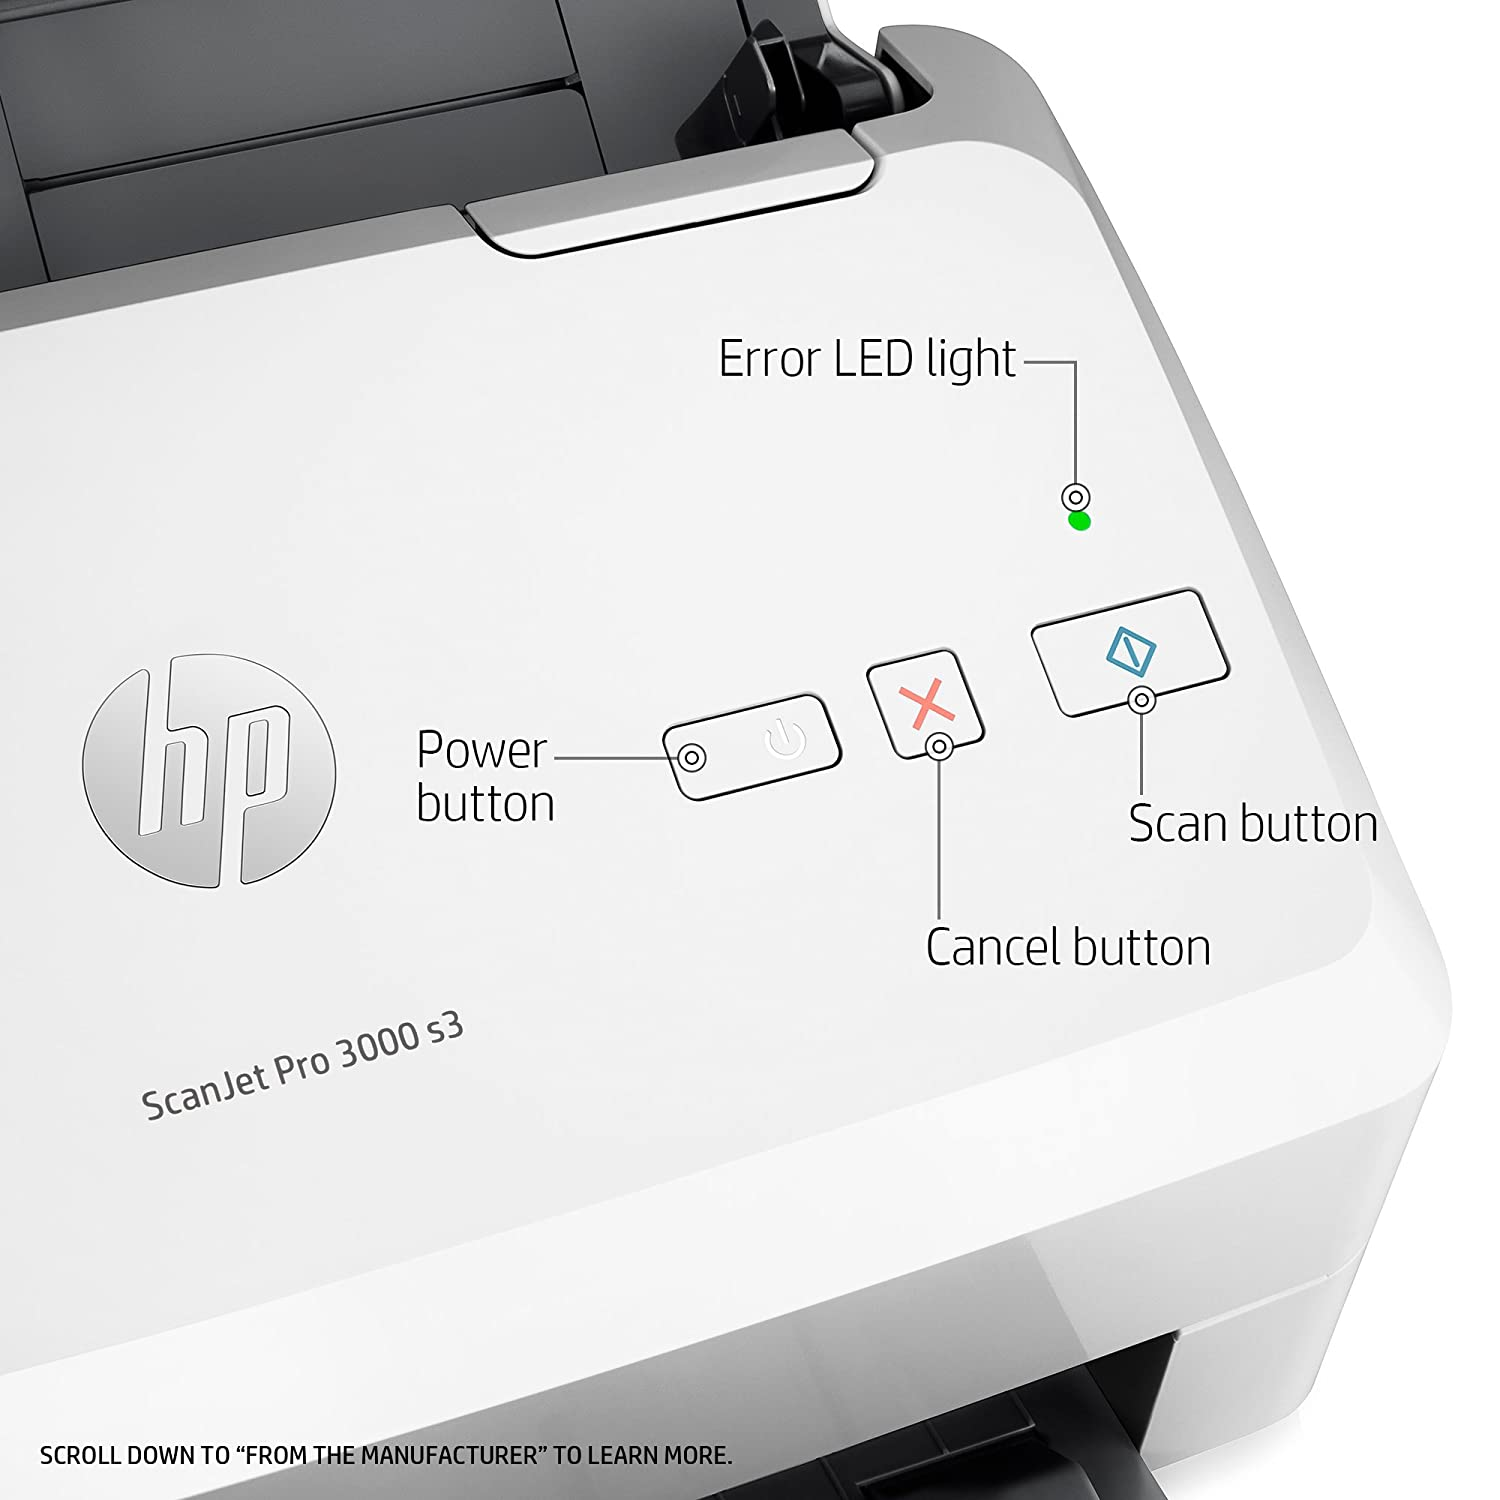 Buy Hp Scanners L2753a Bgj Scanjet Pro 3000 S3 Sheetfed Comutronics Electronics Qa Color Desktop Scanner Online At Low Prices In India Reviews Ratings